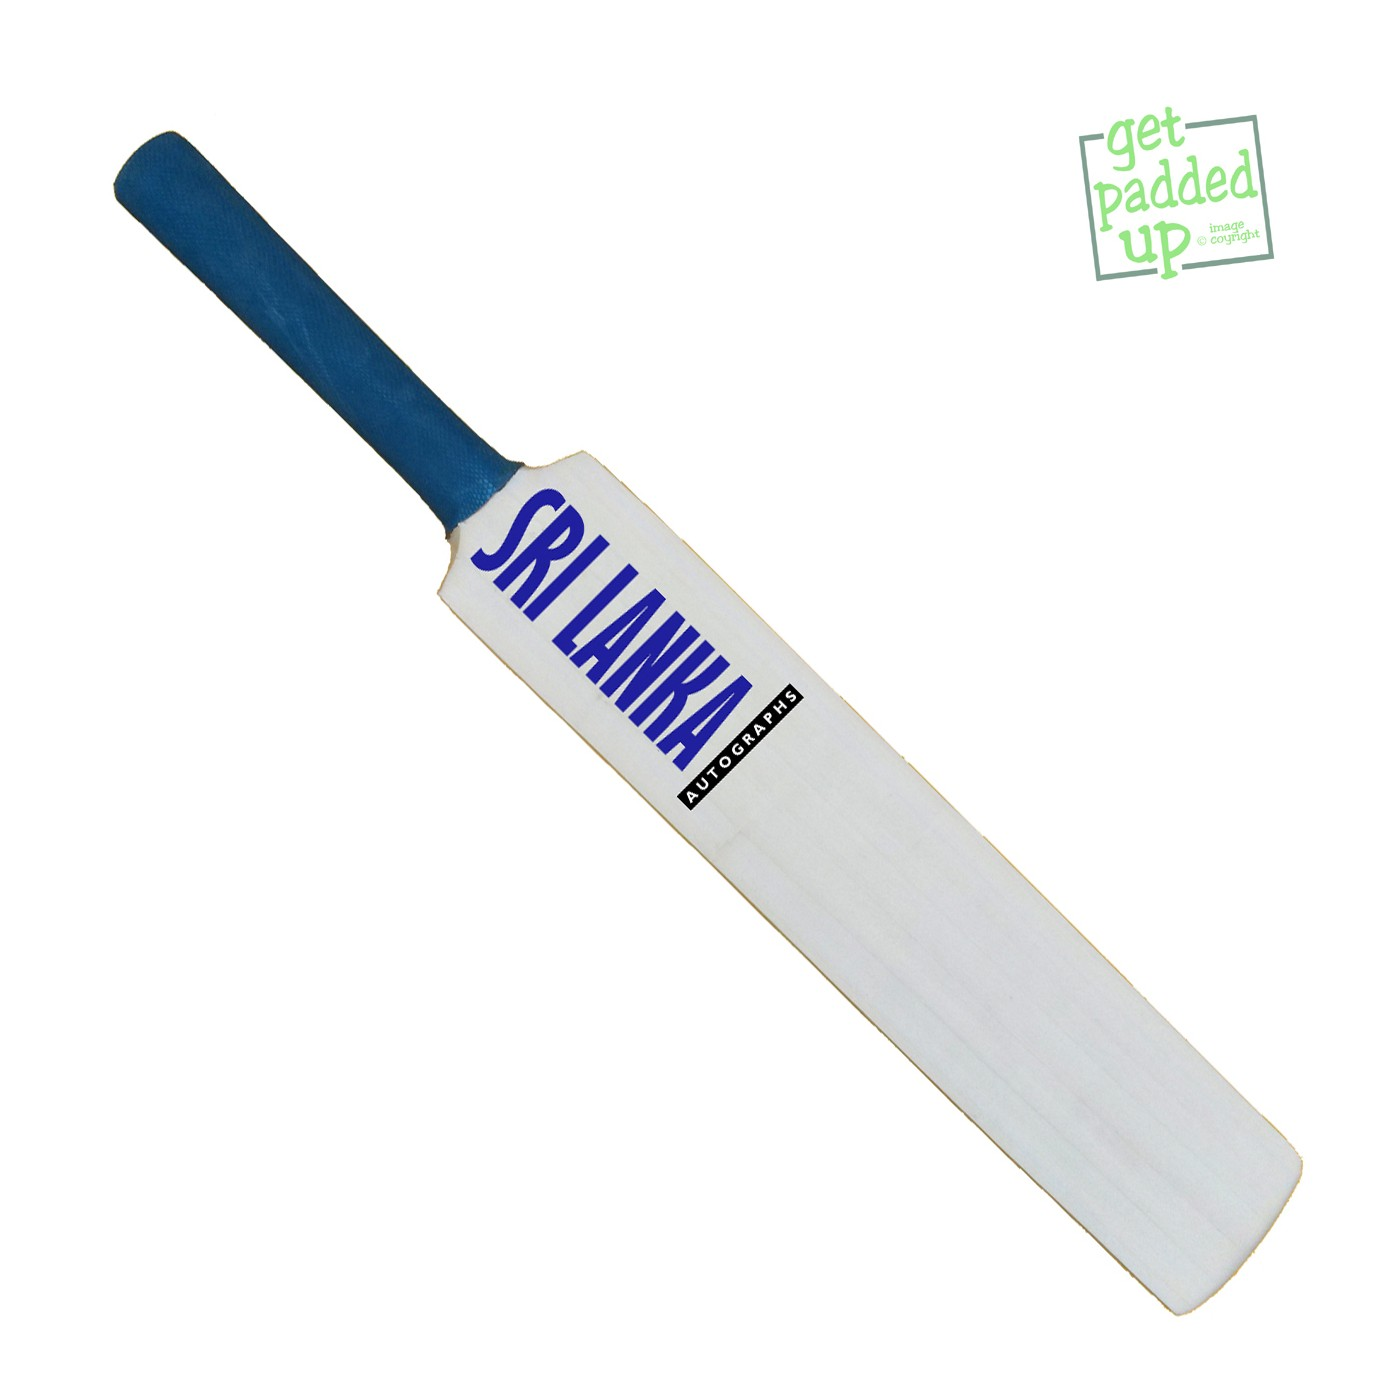 Sri Lanka Autograph Miniature Cricket Bat